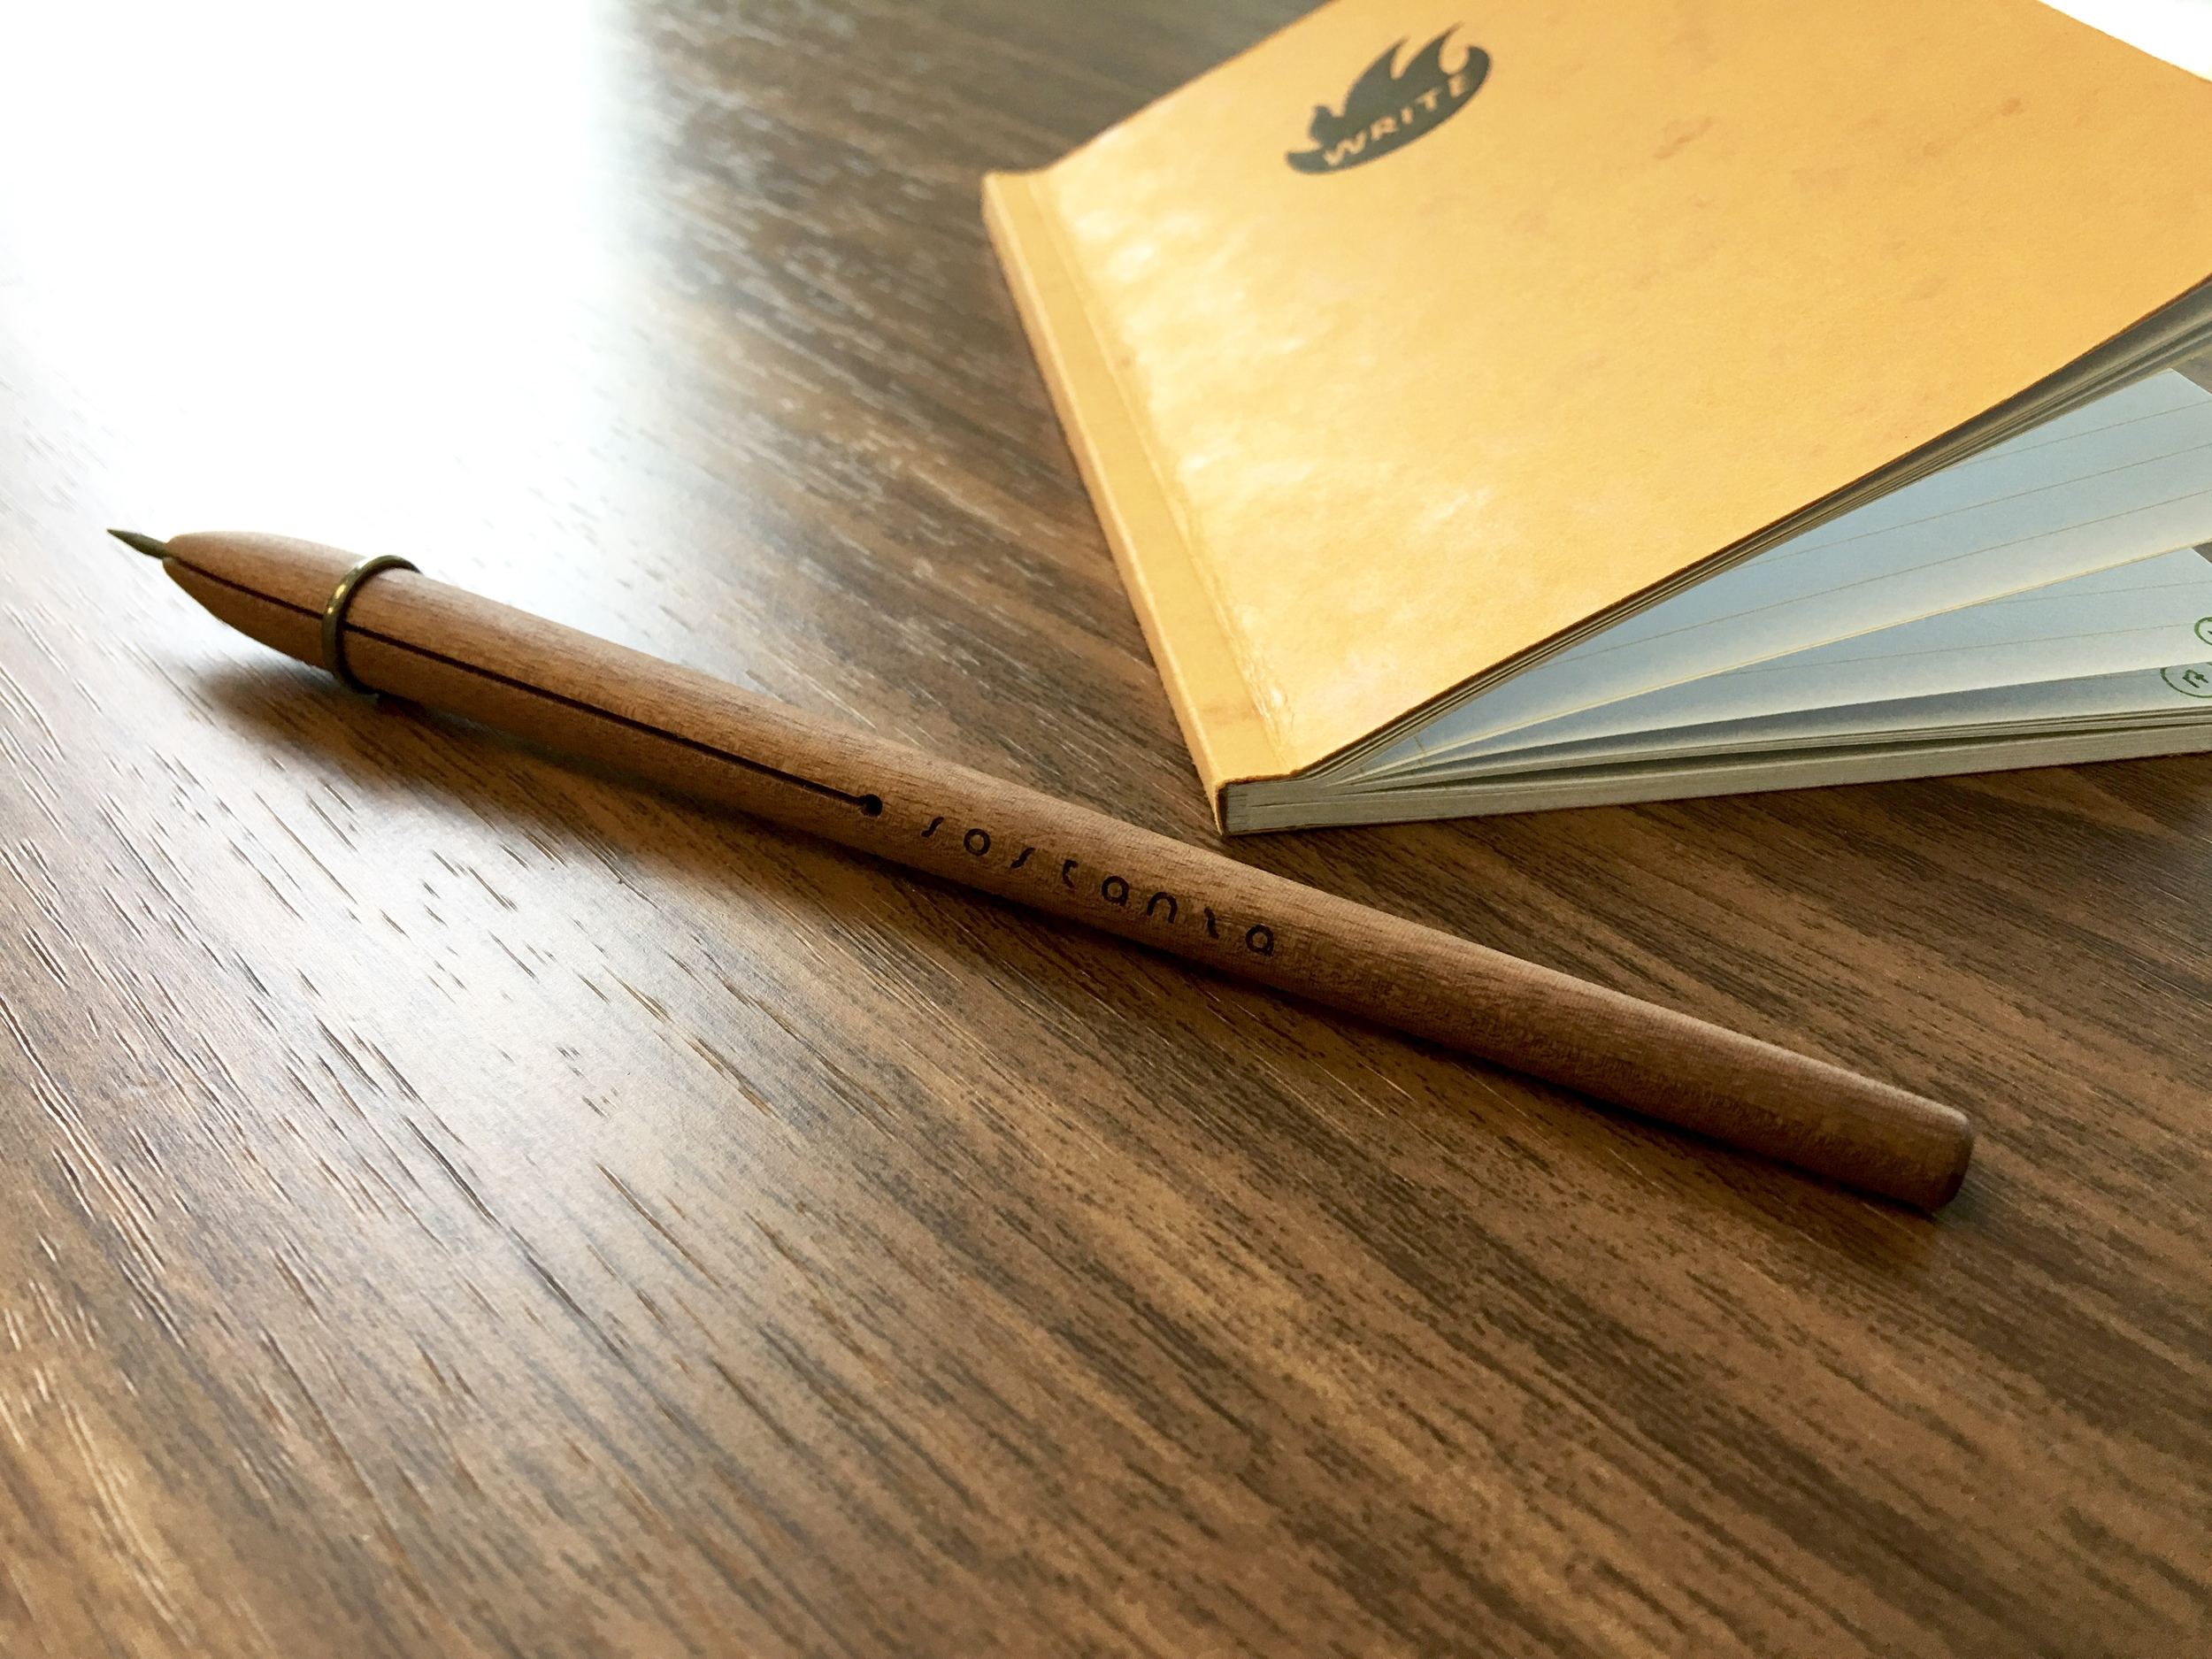 Introducing the Sostanza, a new wooden clutch pencil from Sotteranea Officina Sperimentale in Torino, Italy.